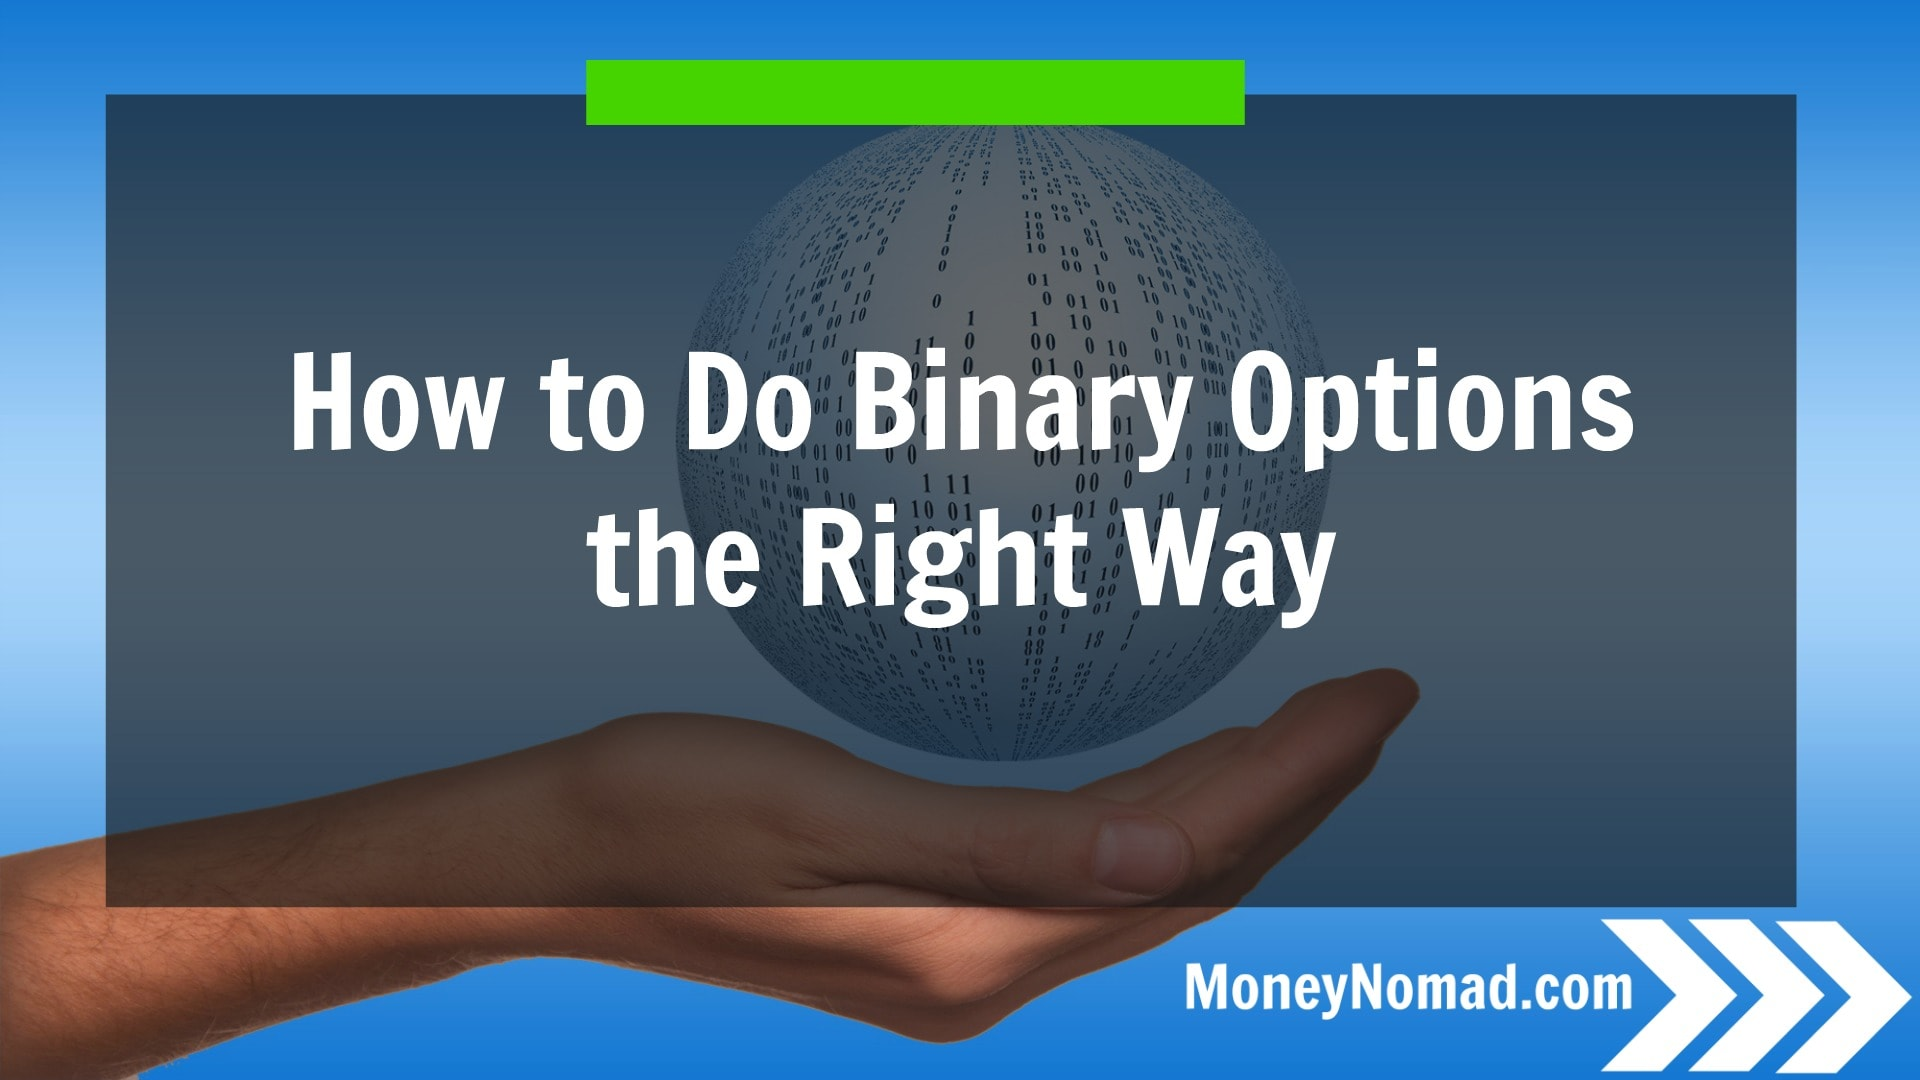 mn-how-to-do-binary-options-the-right-way